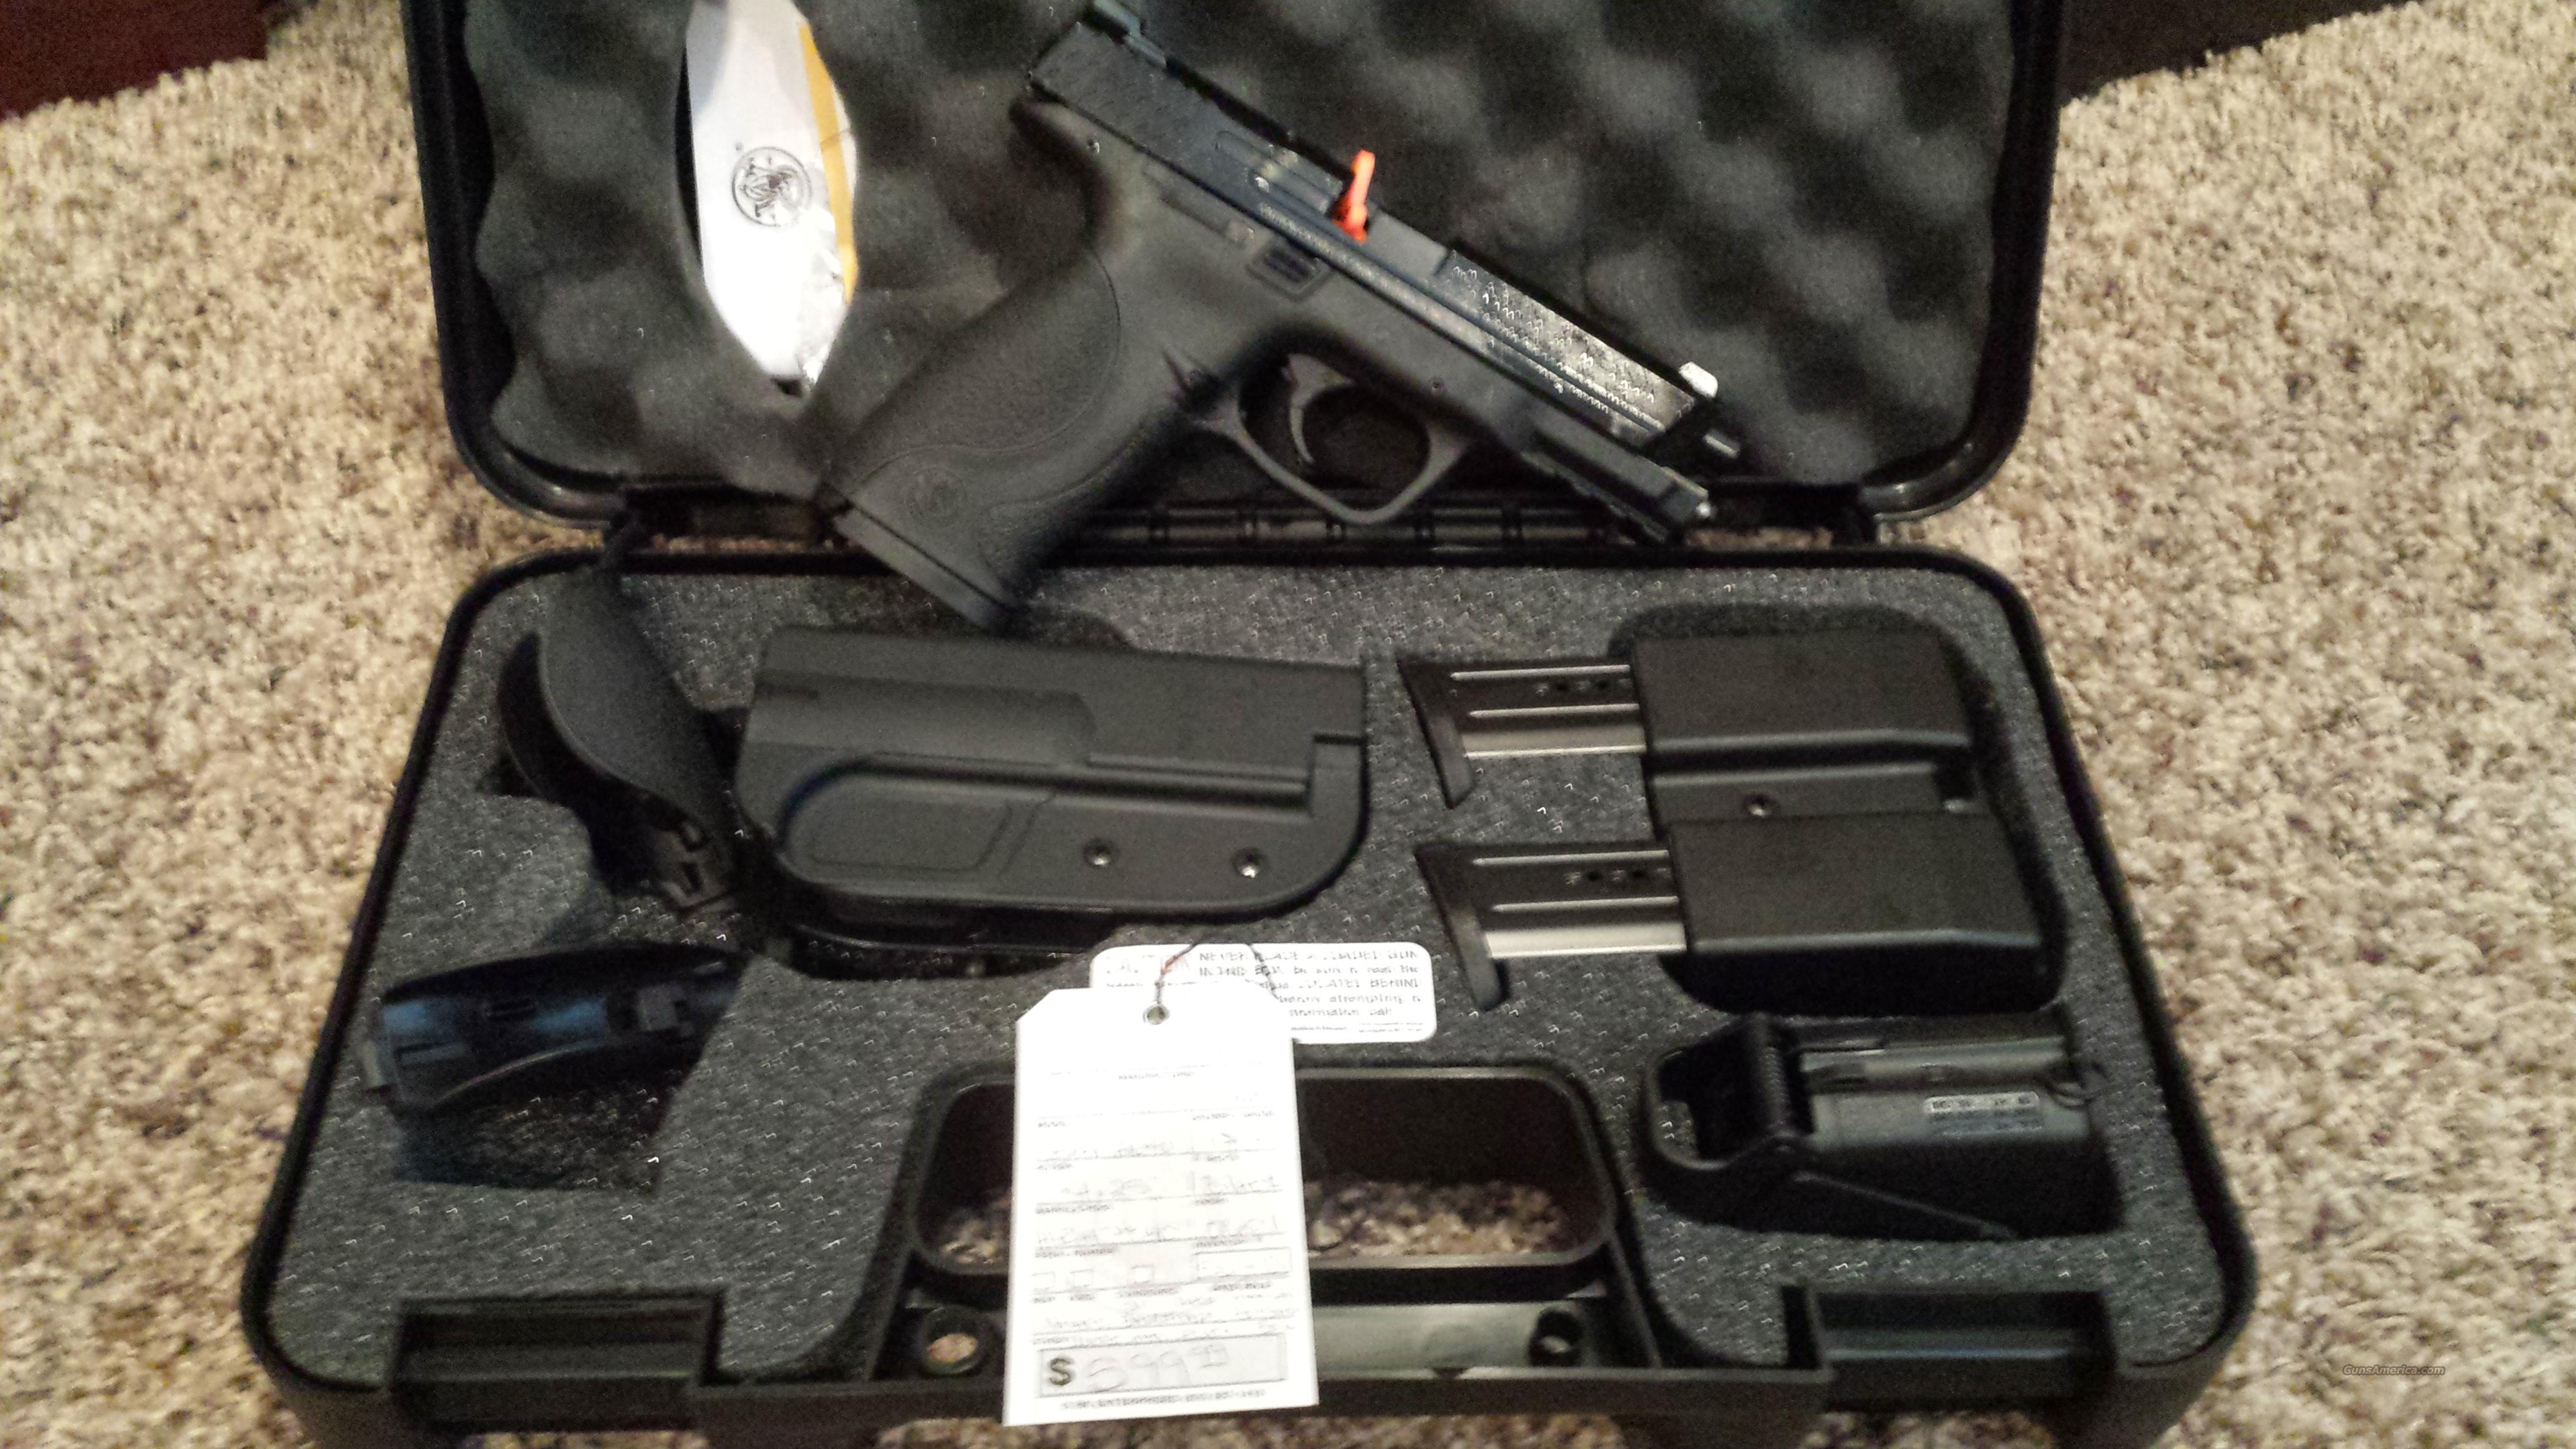 "SMITH & WESSON S&W M&P 9 4.25"" 9MM 17RD CARRY KIT  Guns > Pistols > Smith & Wesson Pistols - Autos > Polymer Frame"